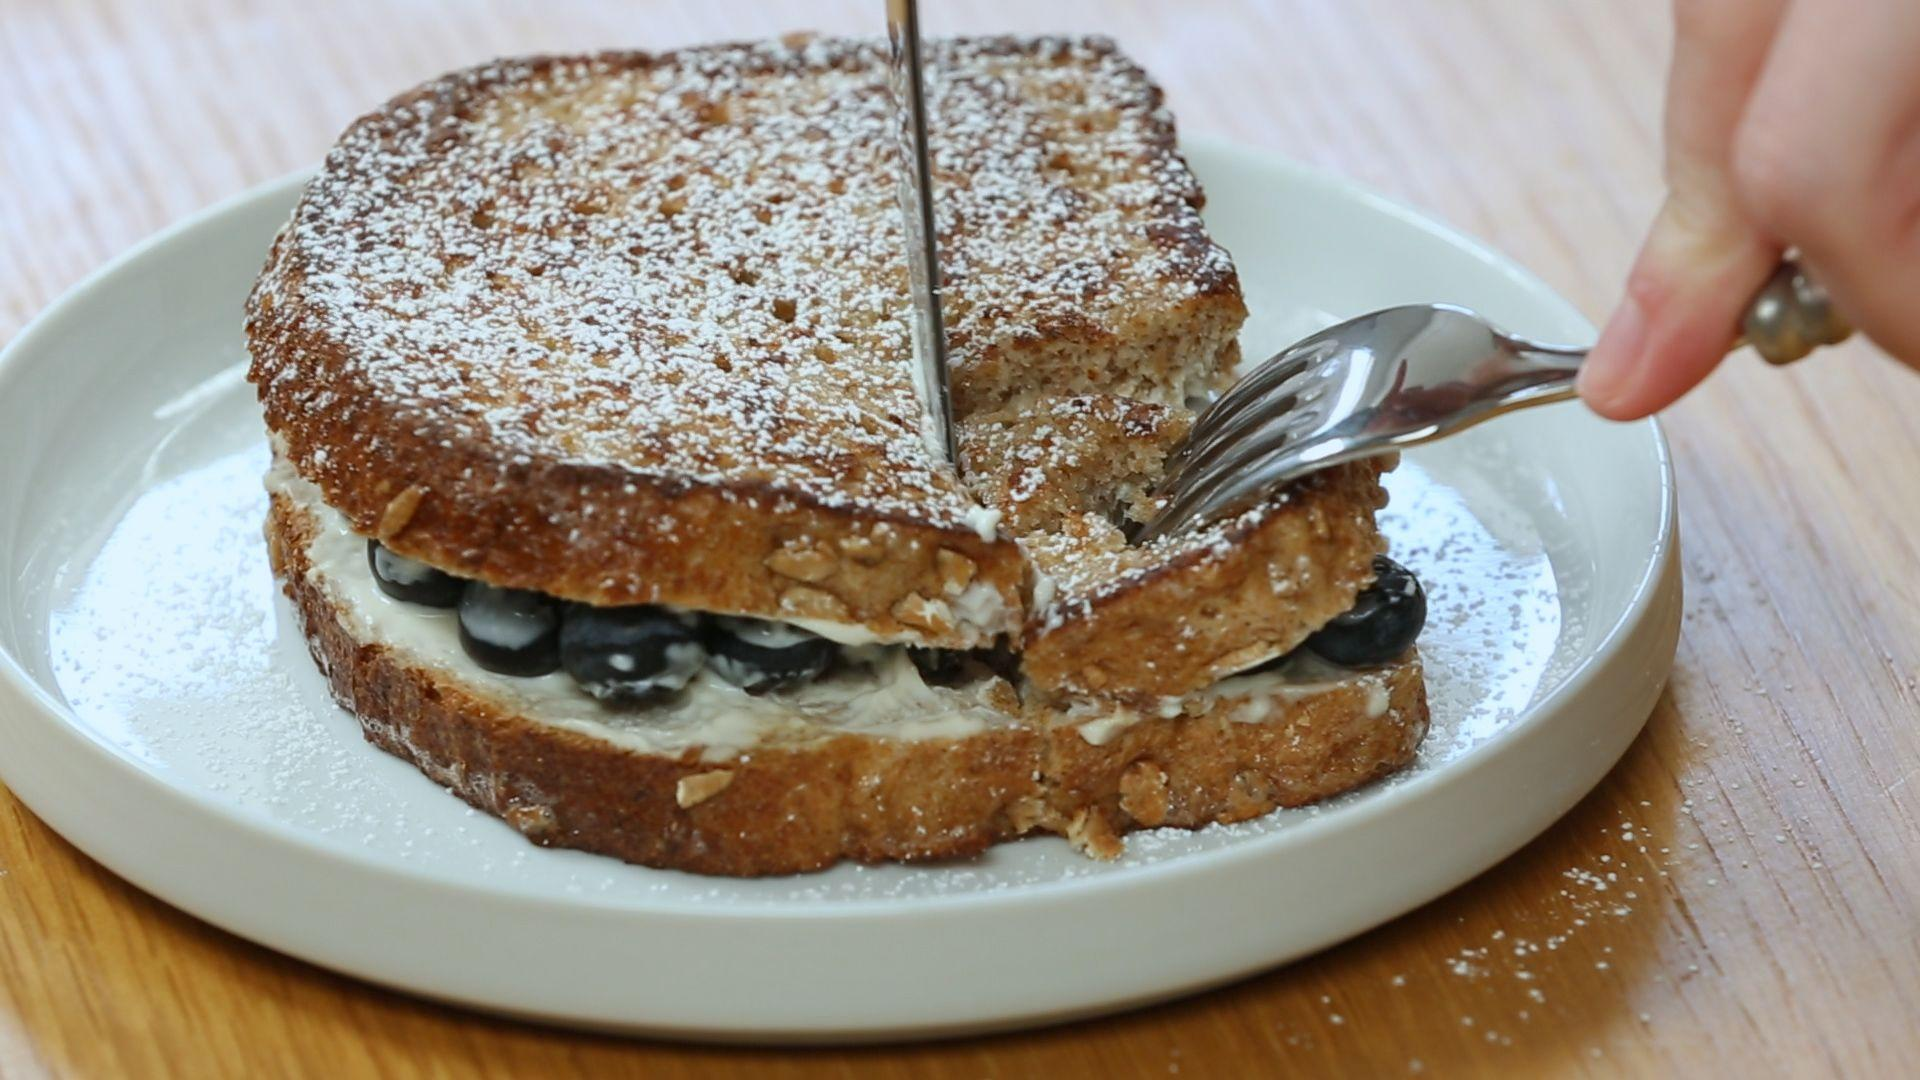 How to Make a Simple and Healthy Blueberry-Stuffed French Toast Breakfast